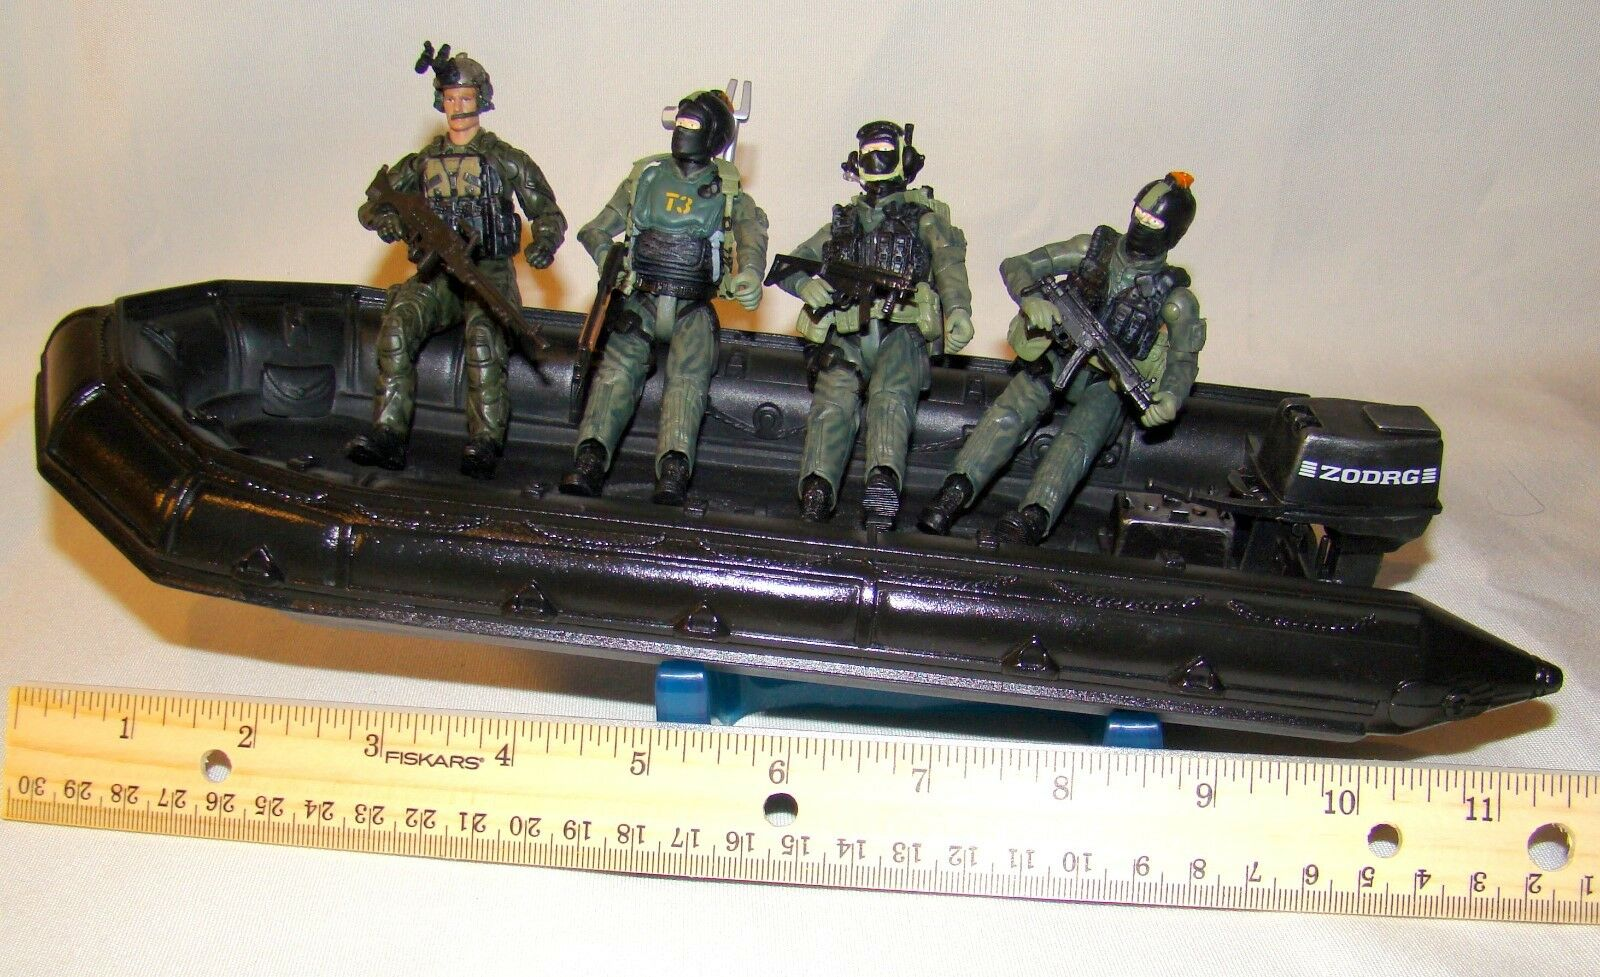 1 18 BBI Elite Force U.S Navy SEAL Assault Boat ZODRG with Figures Soldiers